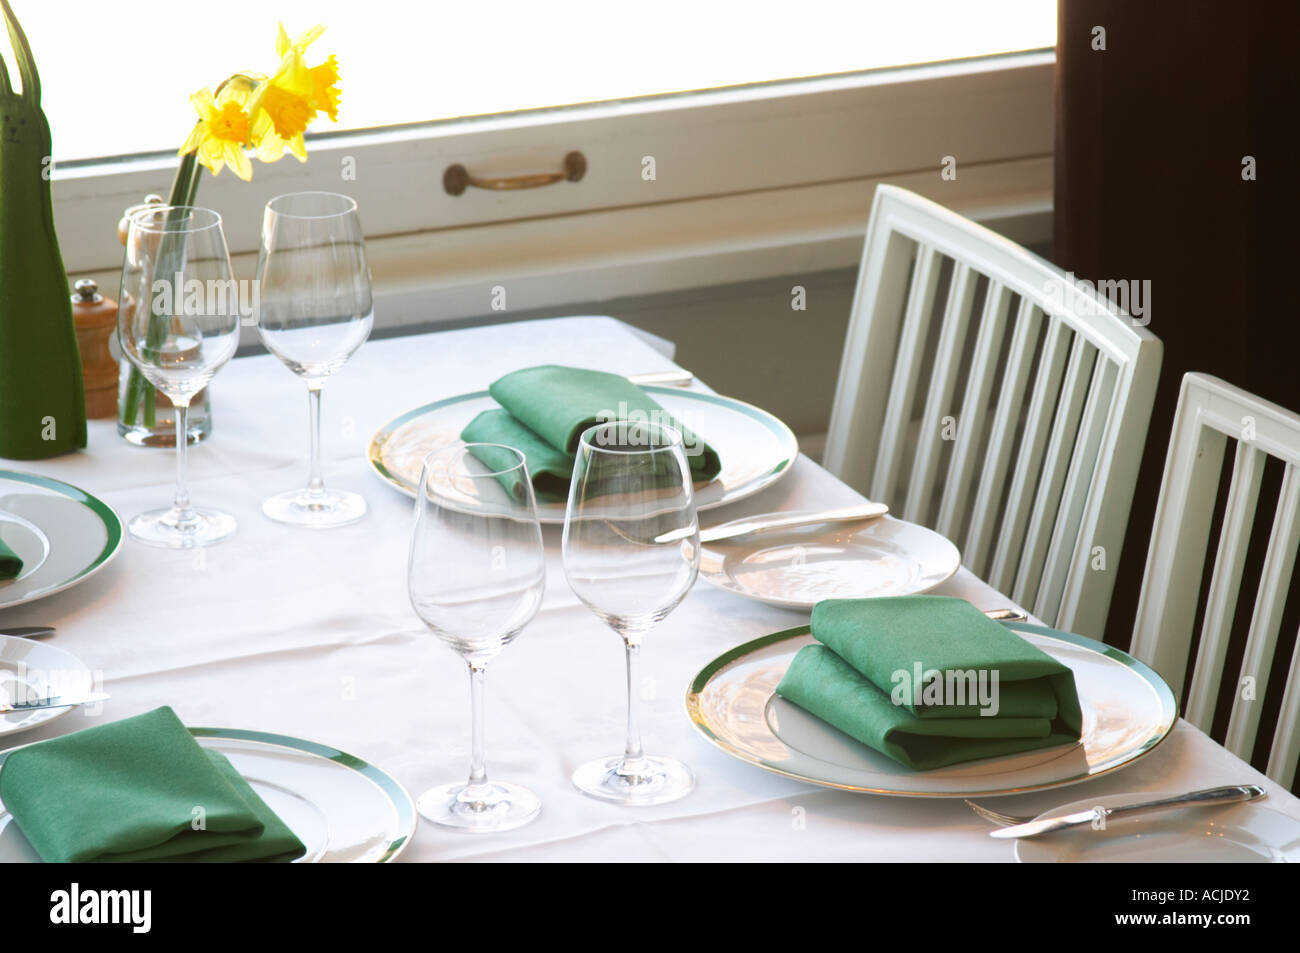 A restaurant table with a white linen table cloth set for four persons with plates silver cutlery and green napkins and a yellow Easter daffodil lily ... & A restaurant table with a white linen table cloth set for four Stock ...